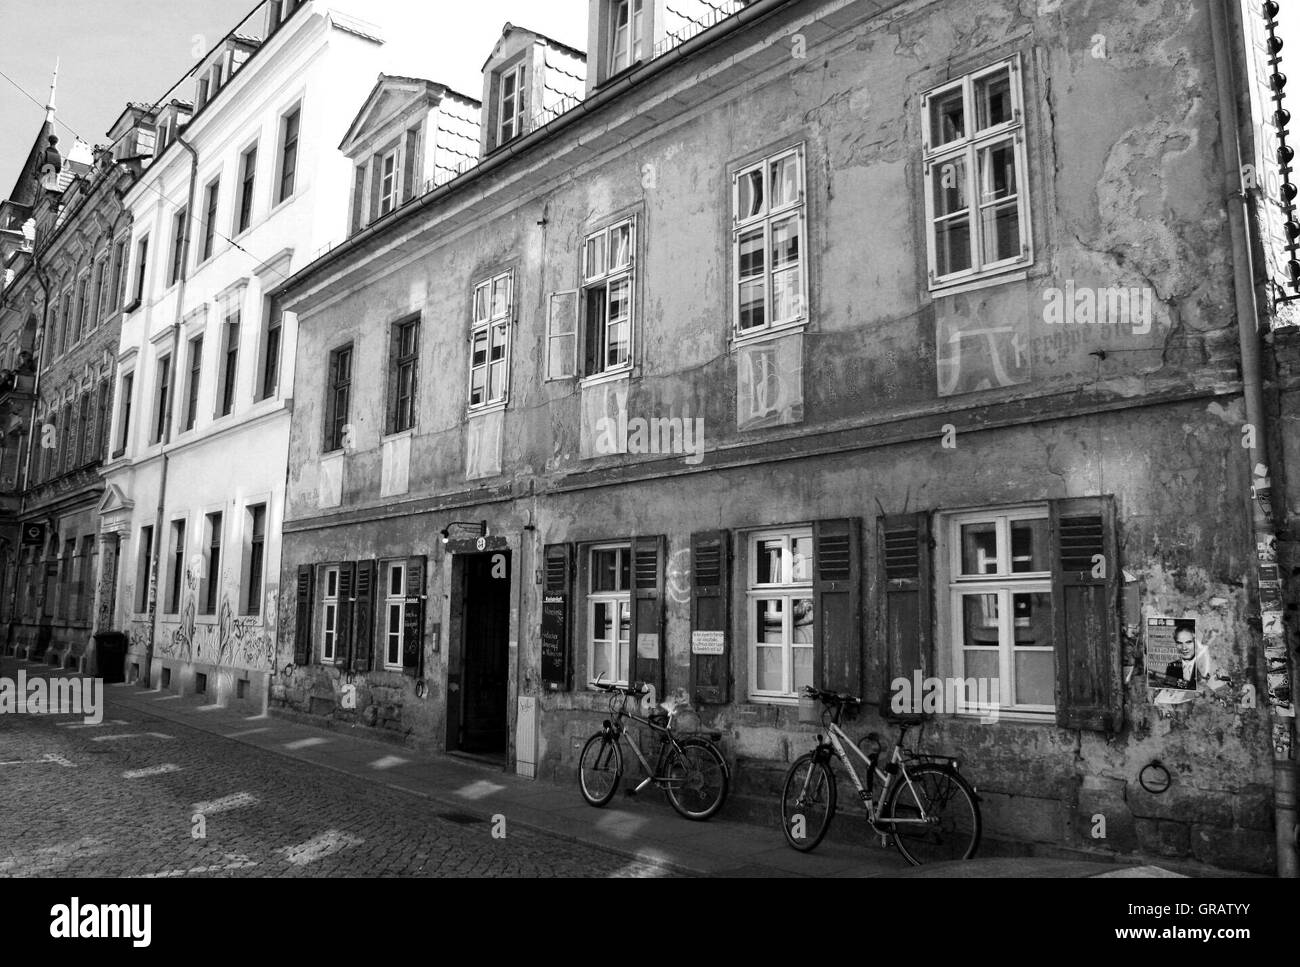 Bicycles Parked On Sidewalk Against Buildings Stock Photo